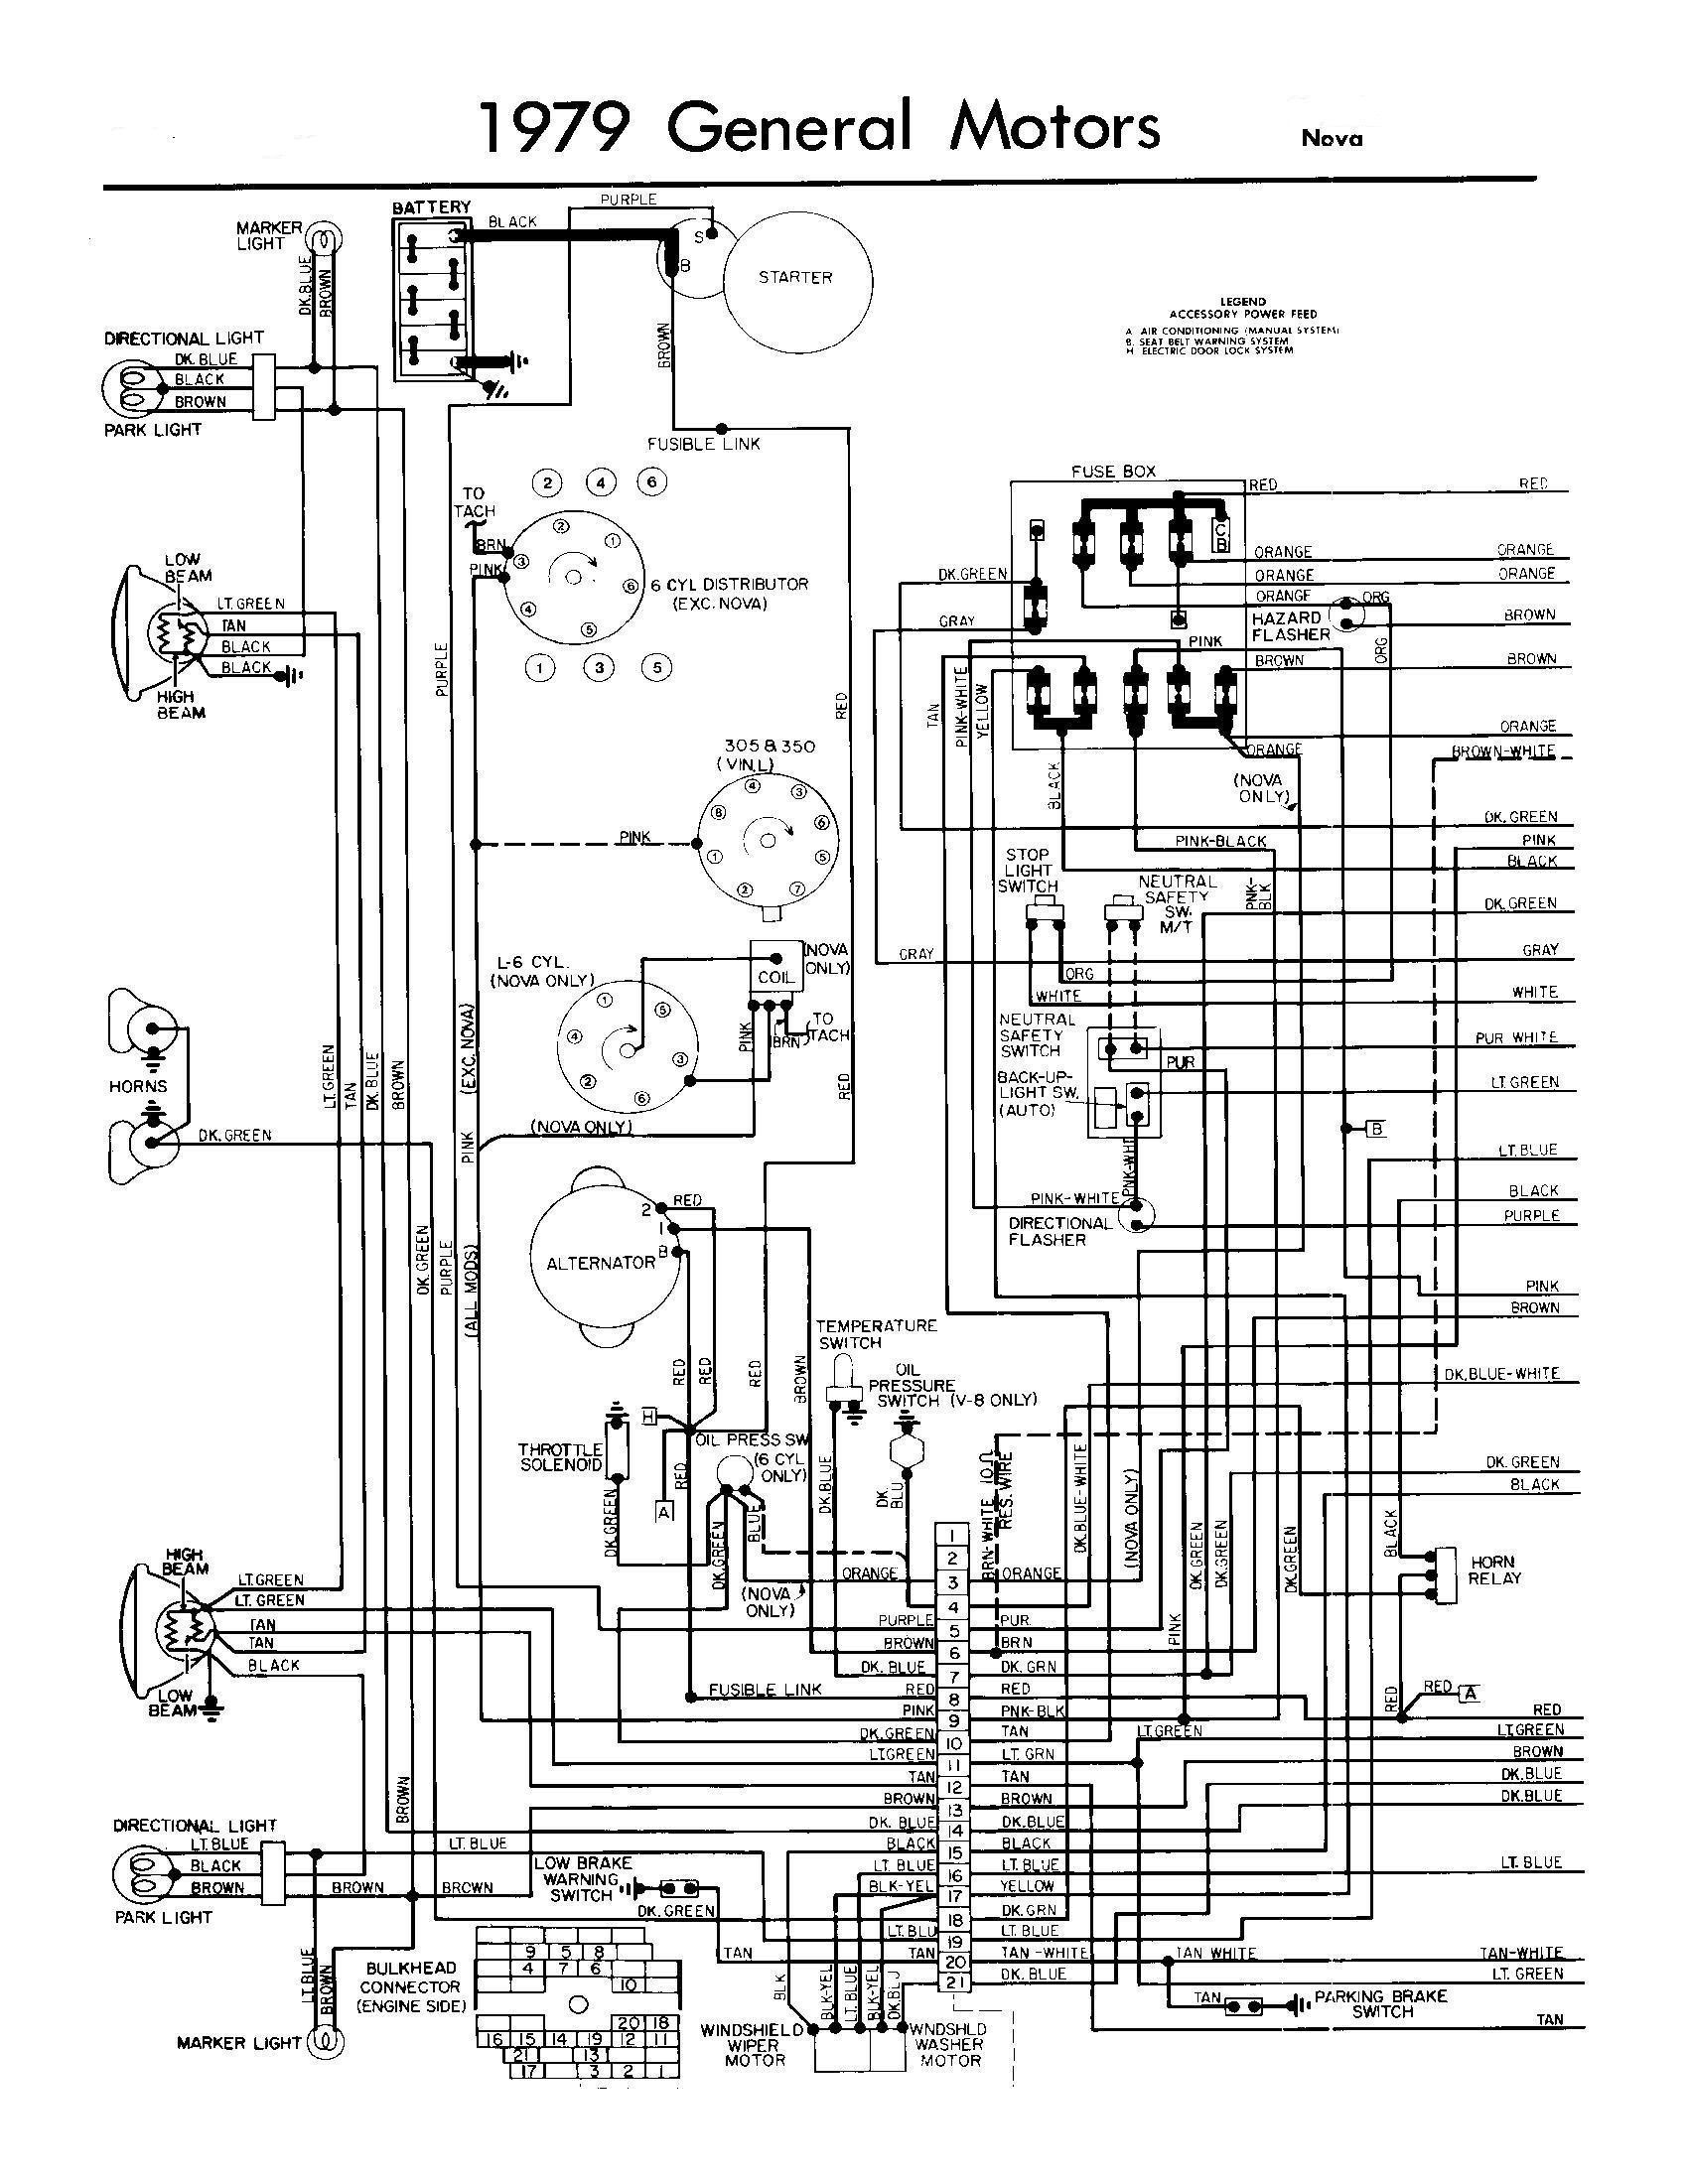 1982 c10 chevy truck wiring diagram basic wiring diagram u2022 rh rnetcomputer co 1993 GMC Truck Wiring Diagram GMC Sierra Wiring Diagram